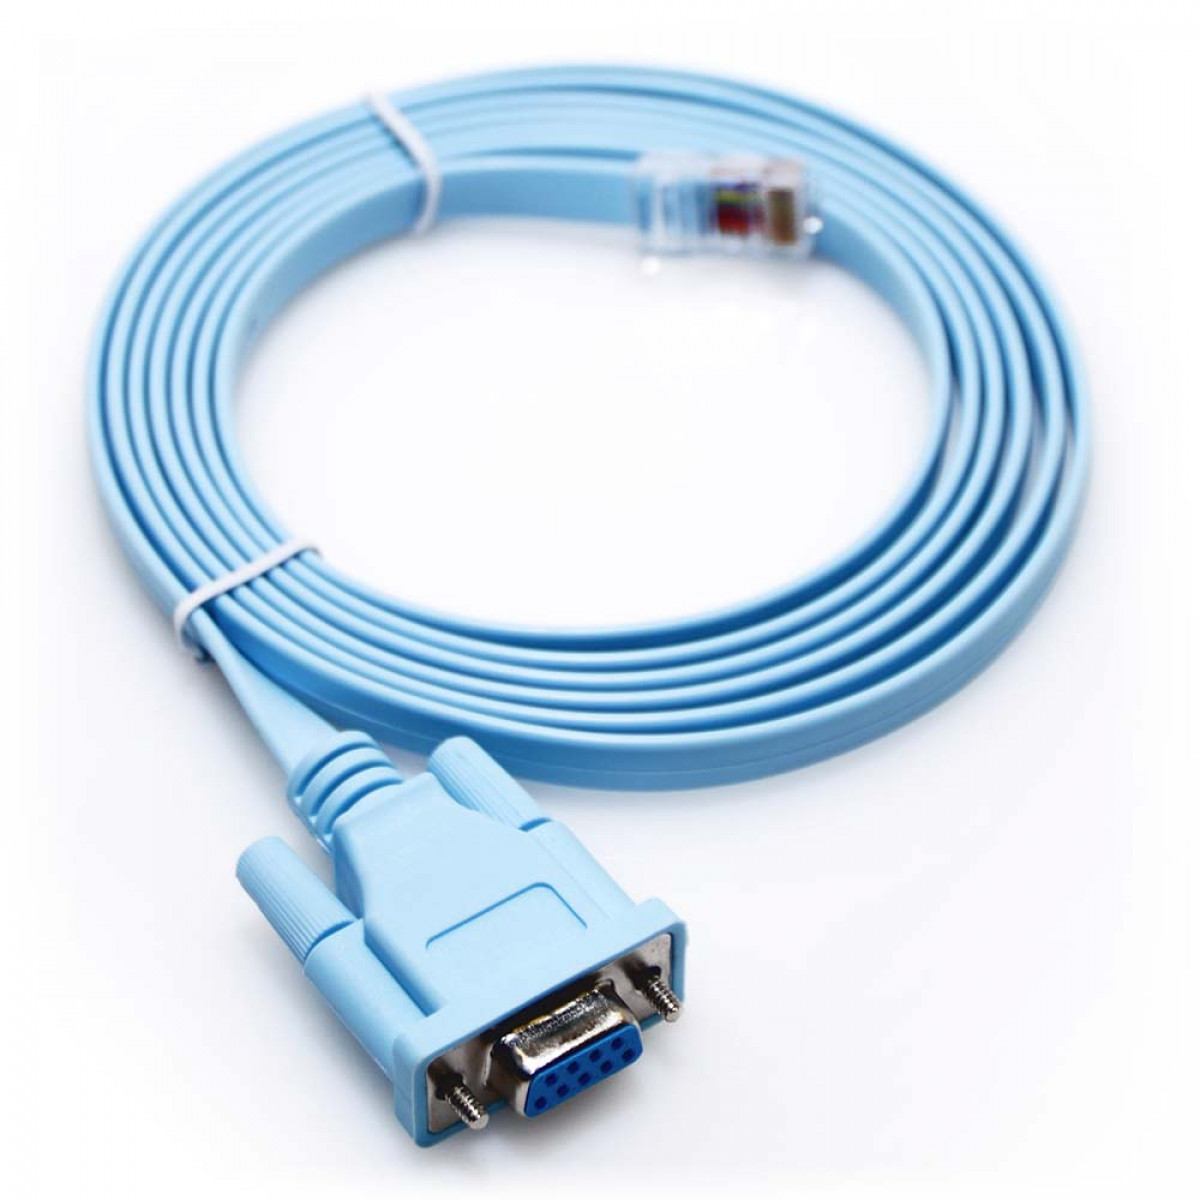 hight resolution of wiring diagram db9 to rj45 rollover rj45 to db9 female connector cisco ethernet cable cisco console